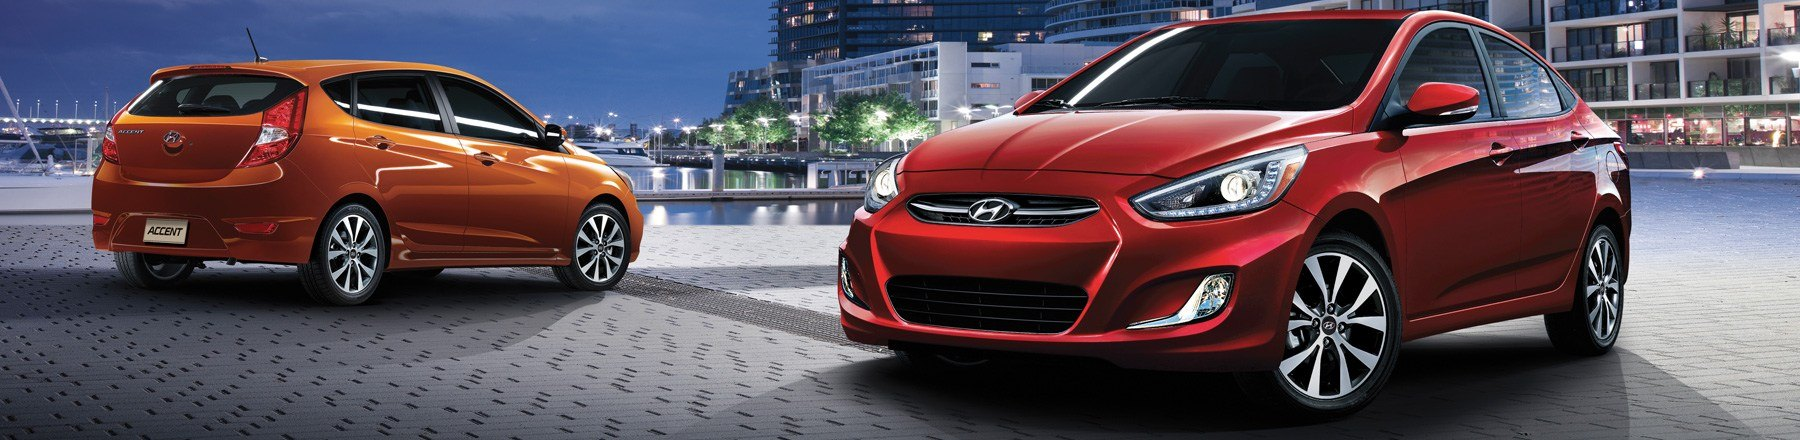 2017-hyundai-accent-hero